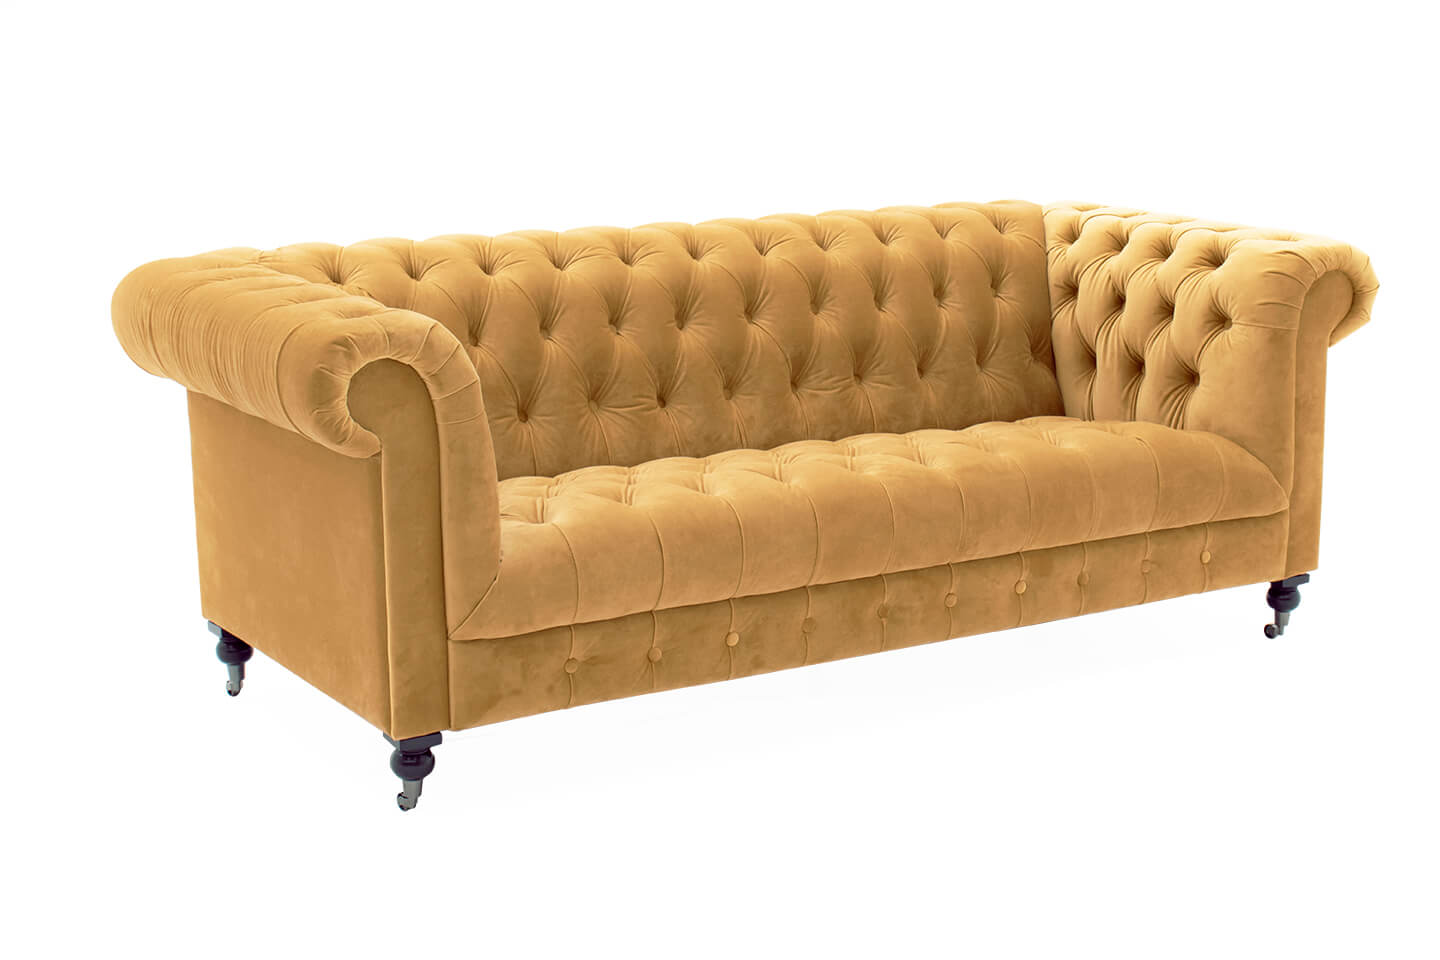 Darby 3 Seater Mustard